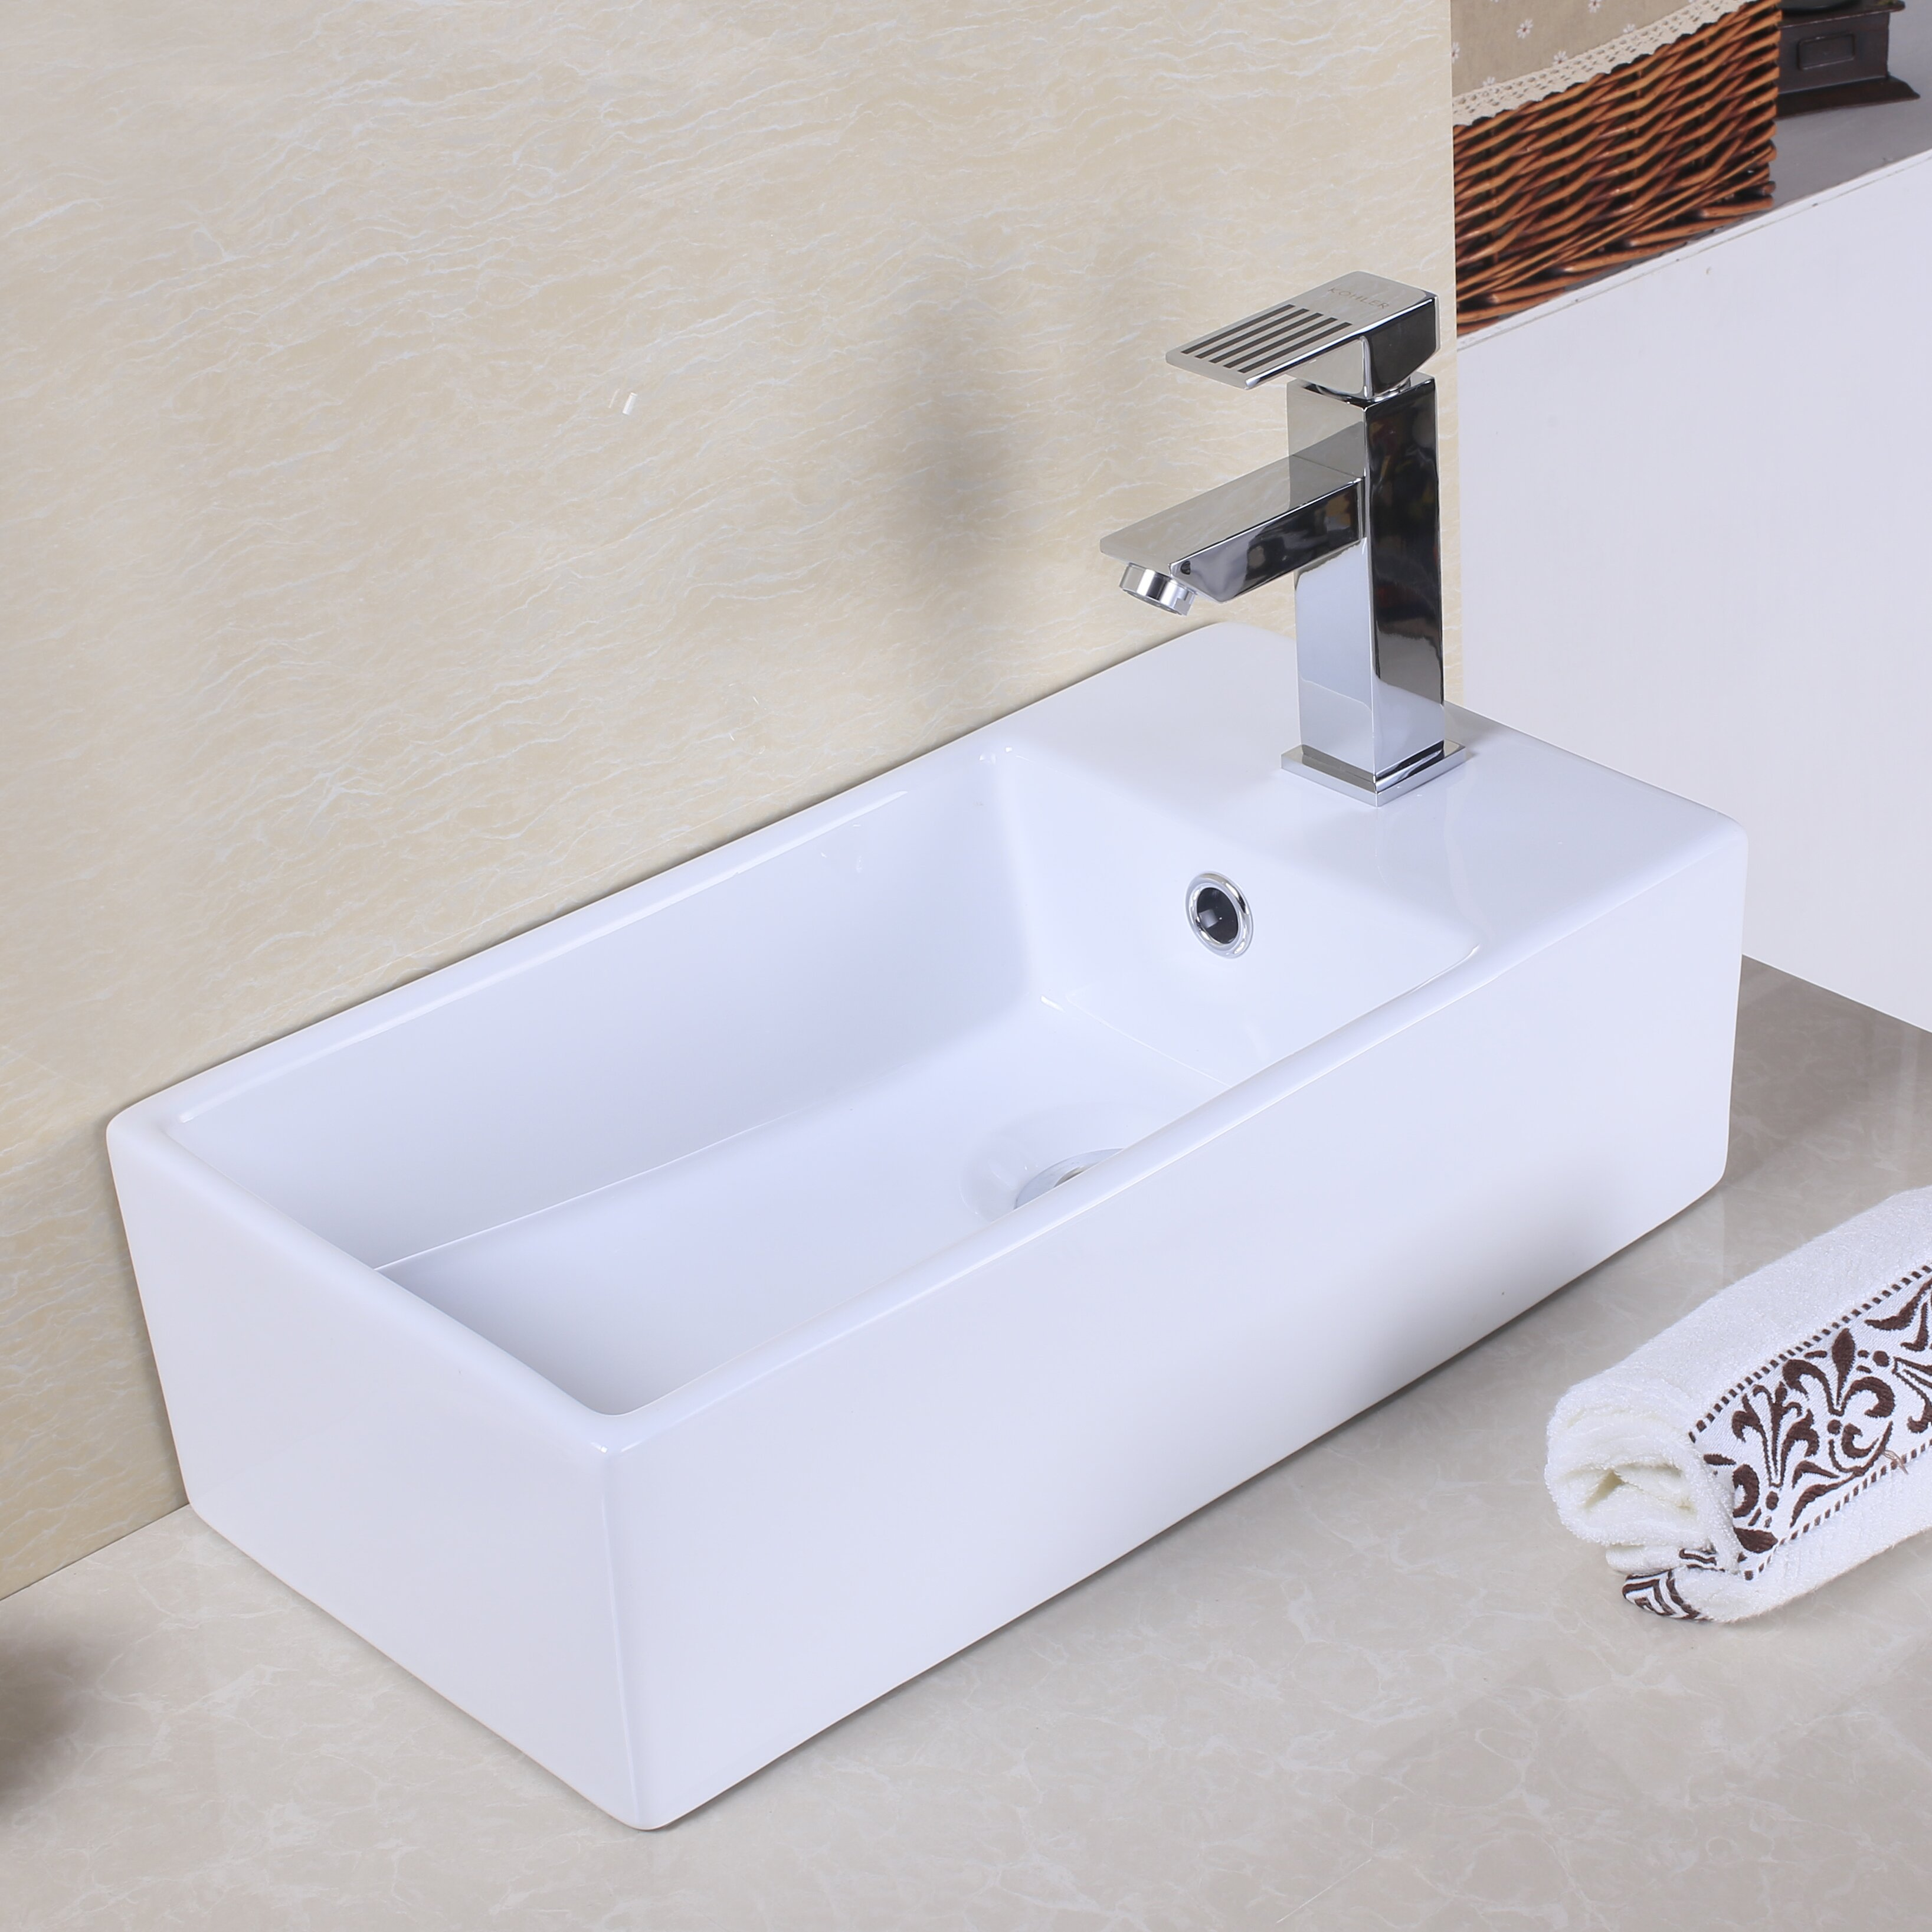 Rectangular Vessel Sink With Overflow : ... Counter Rectangle Vessel Sink with Overflow & Reviews Wayfair.ca